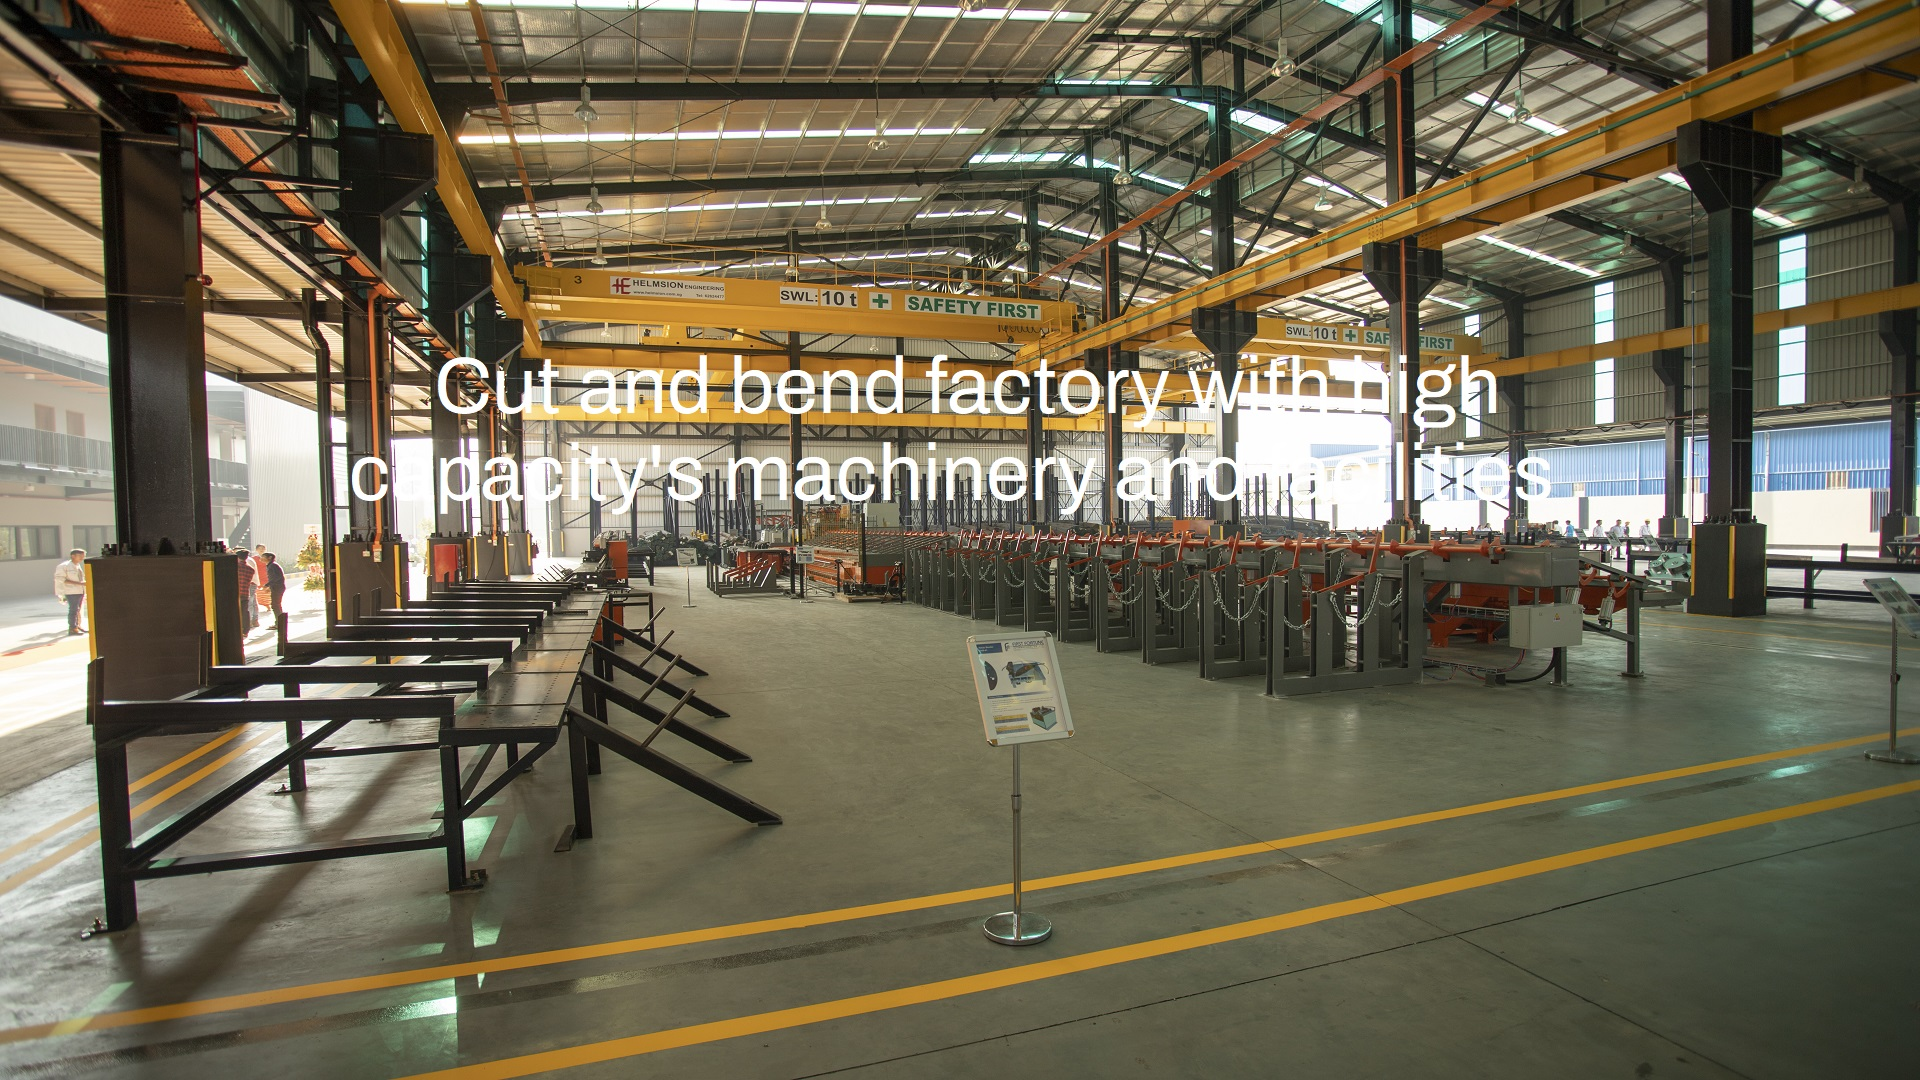 Cut and bend factory with high capacity's machinery and facilities